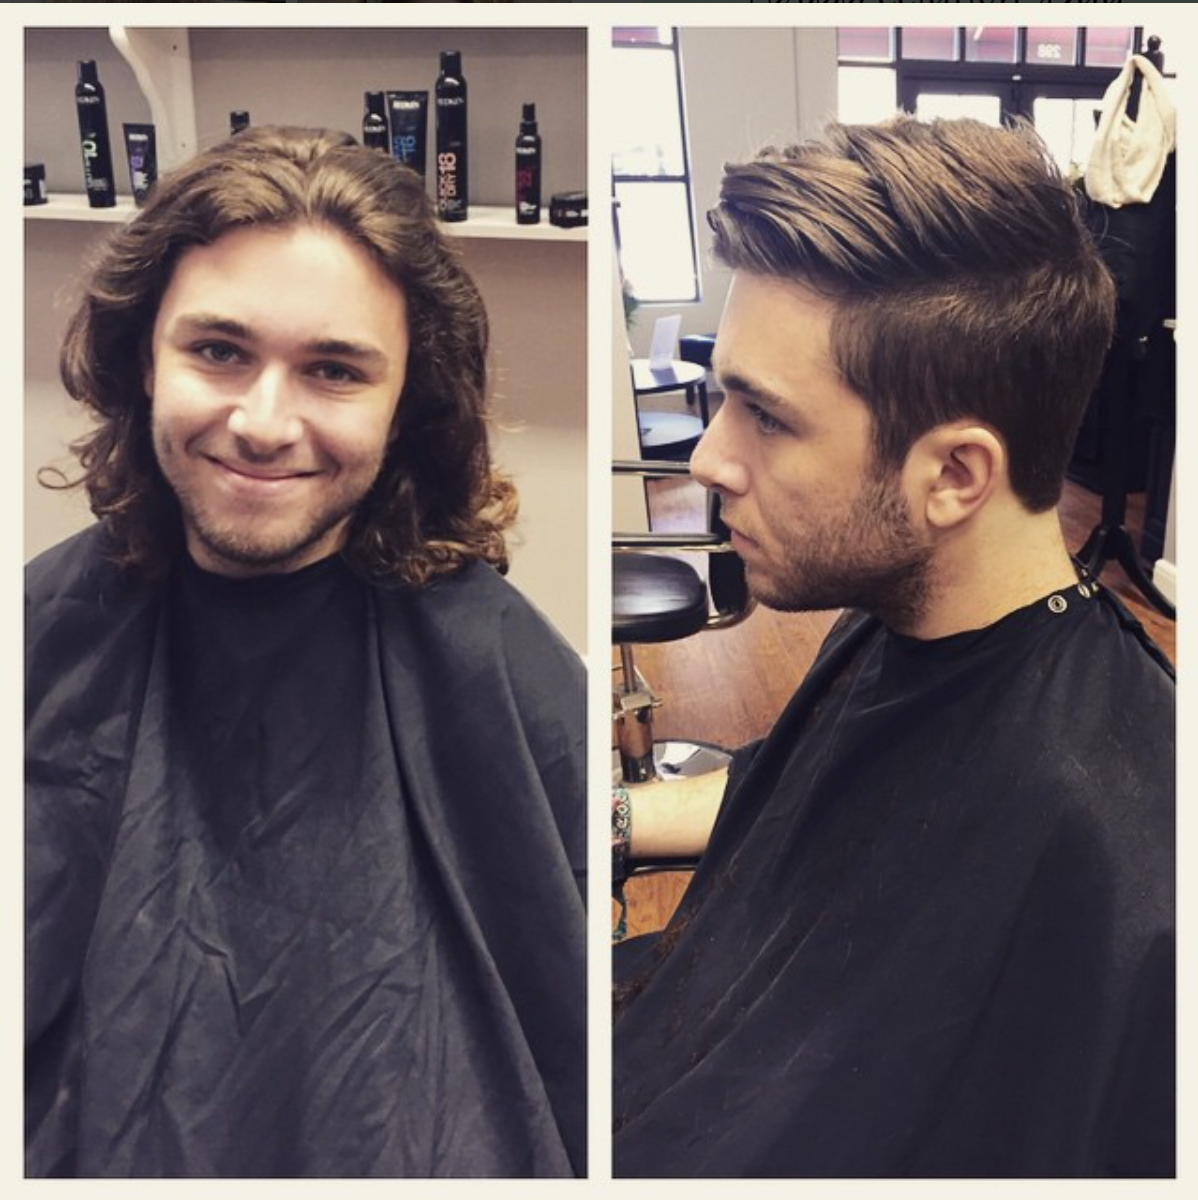 Before And After Men S Haircut By Gabby N At Avante On Main Street